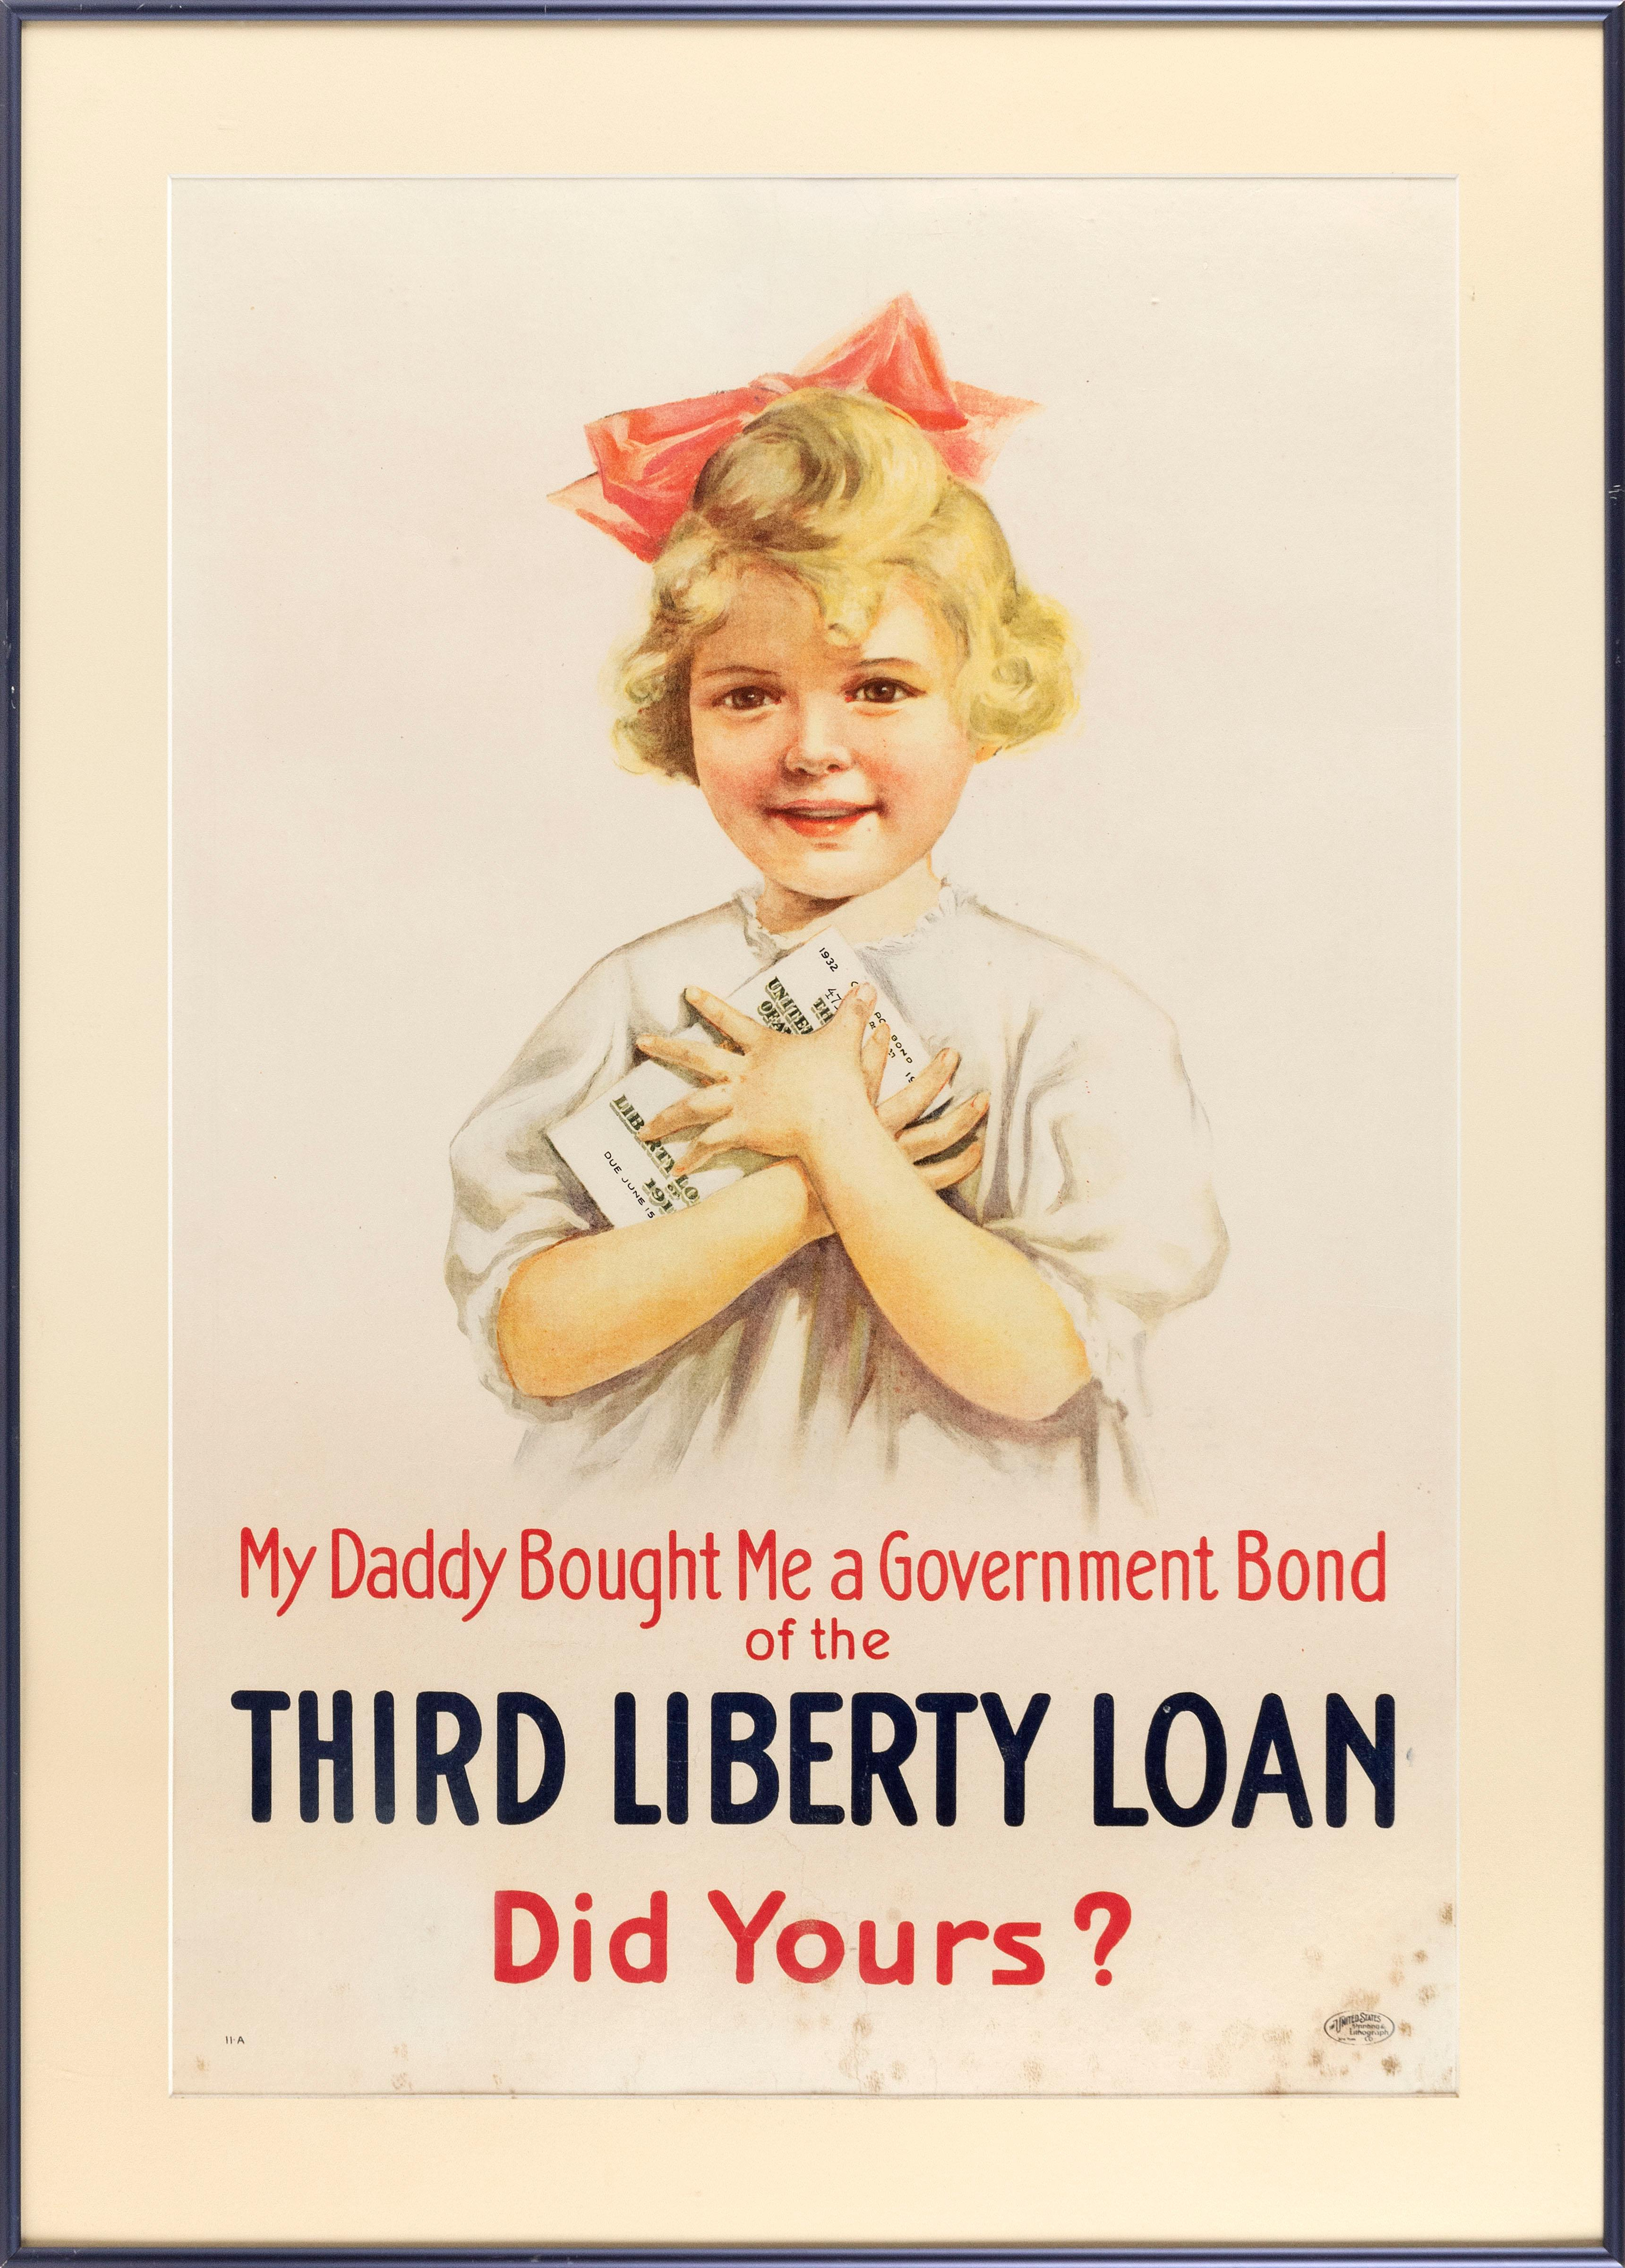 """""""MY DADDY BOUGHT ME A GOVERNMENT BOND ... DID YOURS?"""" WORLD WAR I POSTER For the Third Liberty Loan, published by the United States..."""